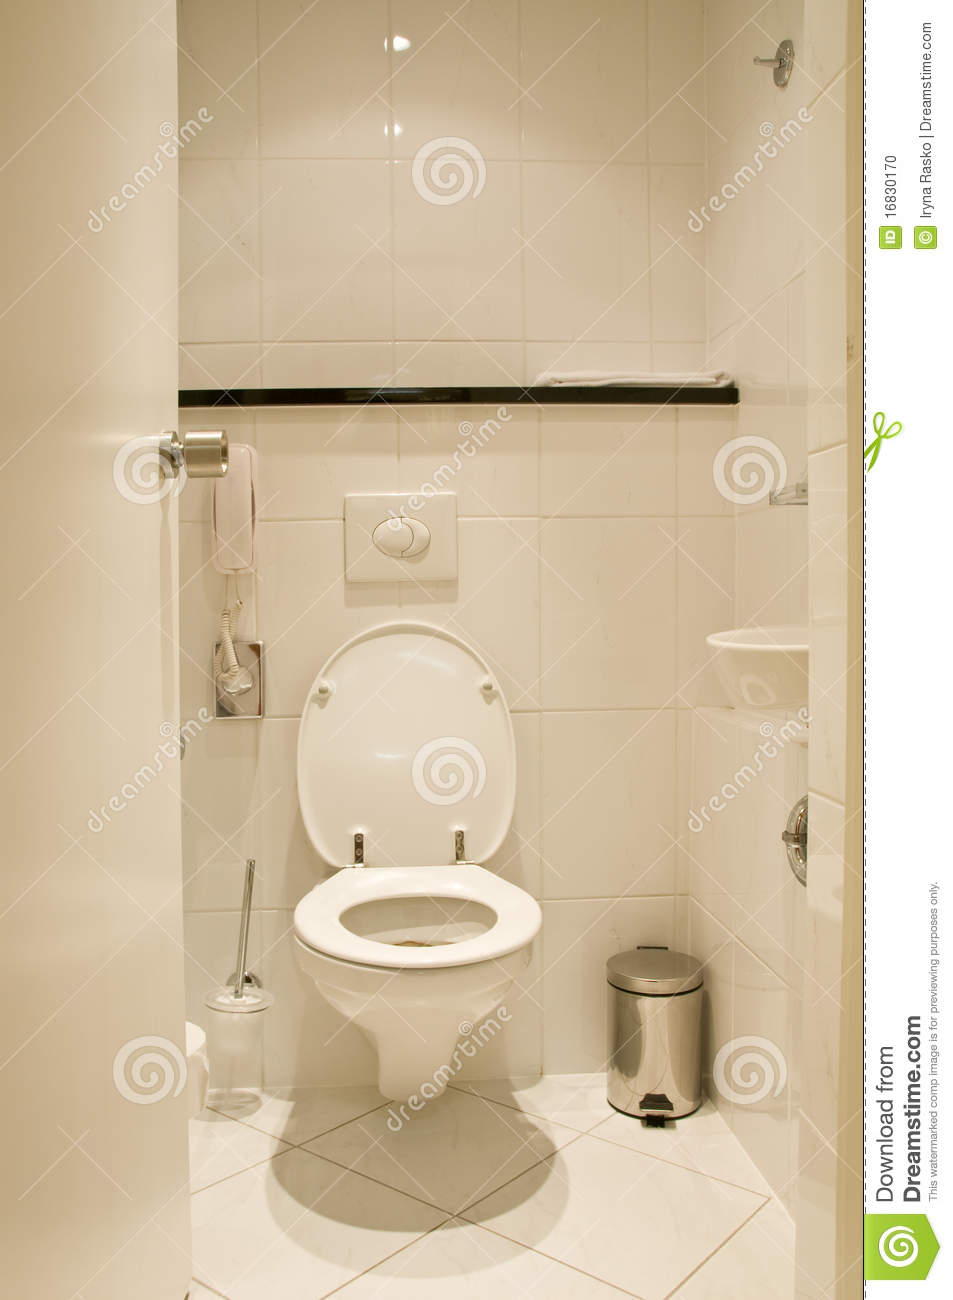 Toilet Room Designs: Toilet Room Stock Photo. Image Of Indoors, House, Domestic